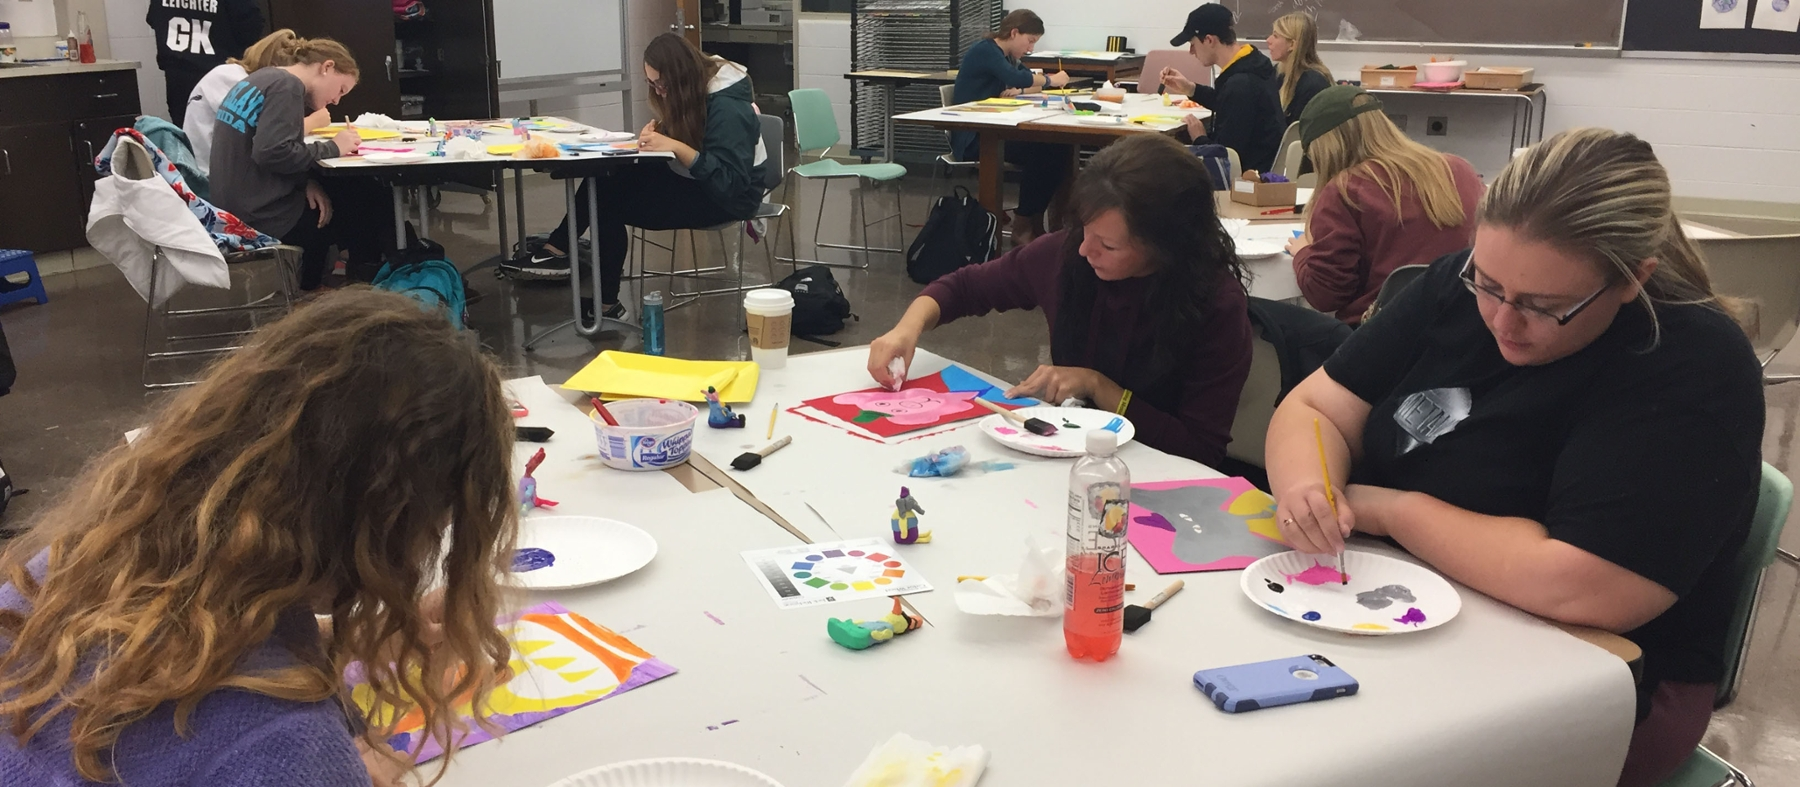 Student teachers and children work on art projects at tables